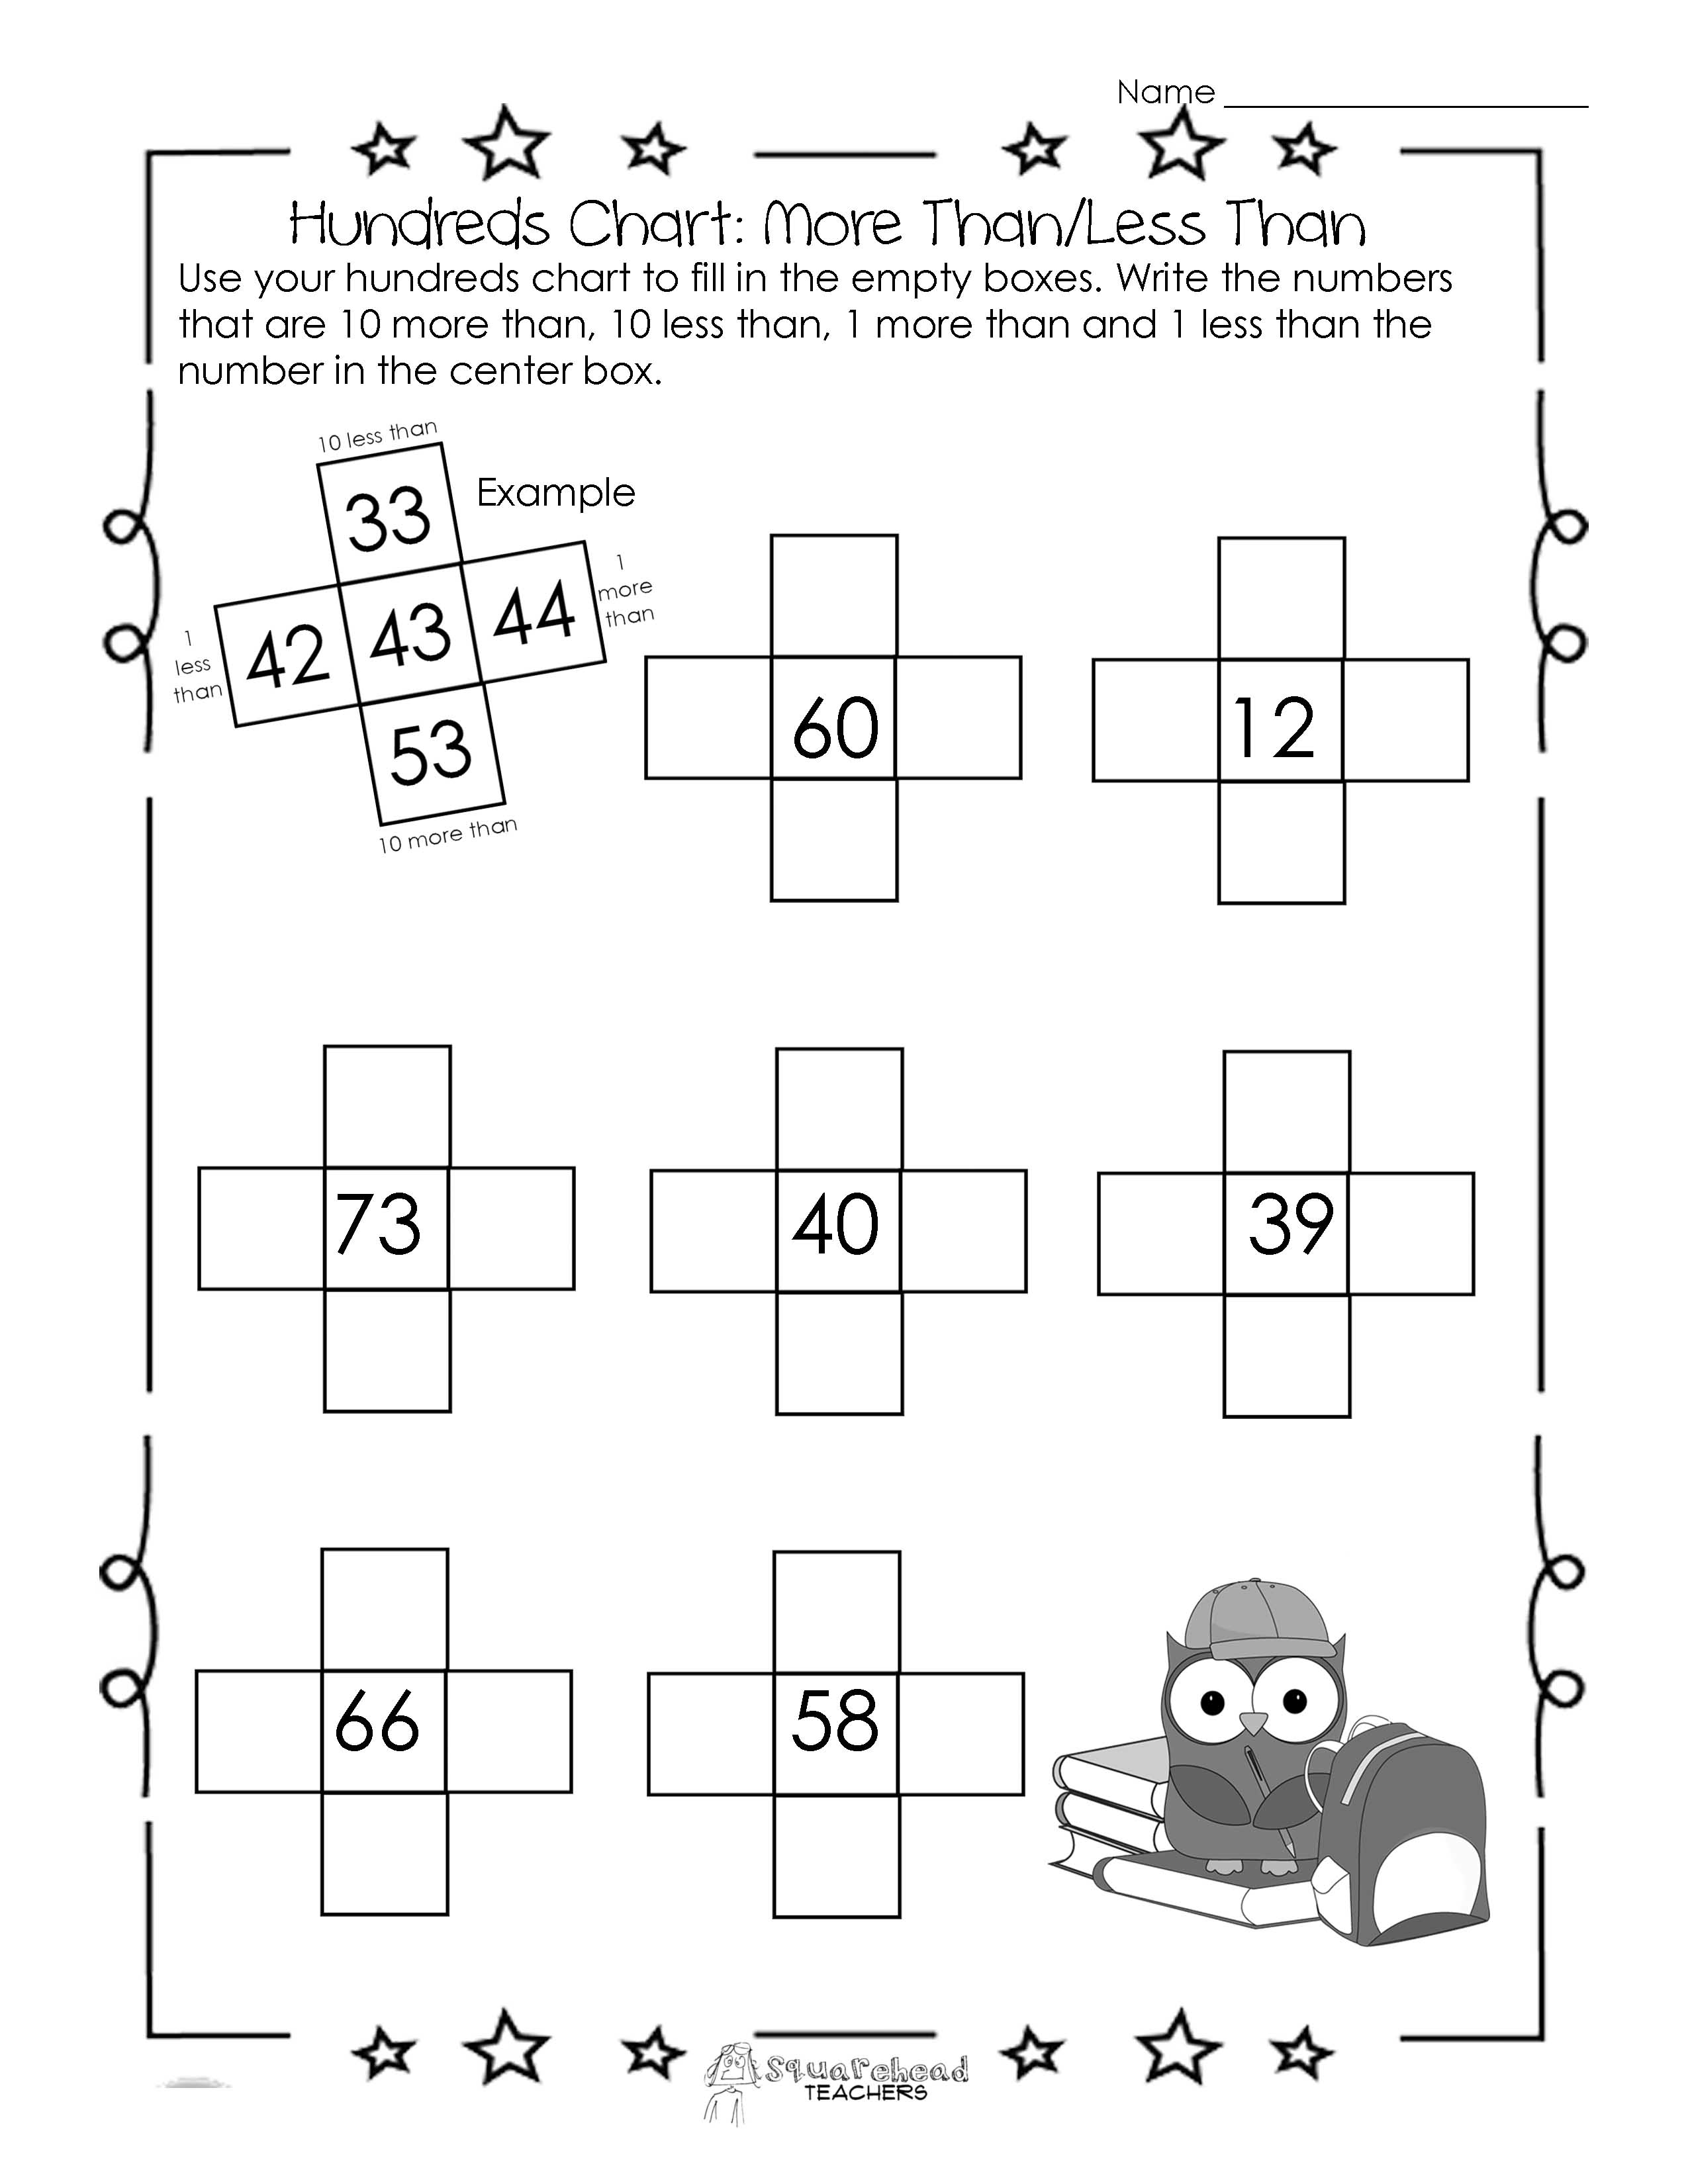 Hundreds Chart Worksheet: 10 More Than/10 Less Than | Squarehead Teachers